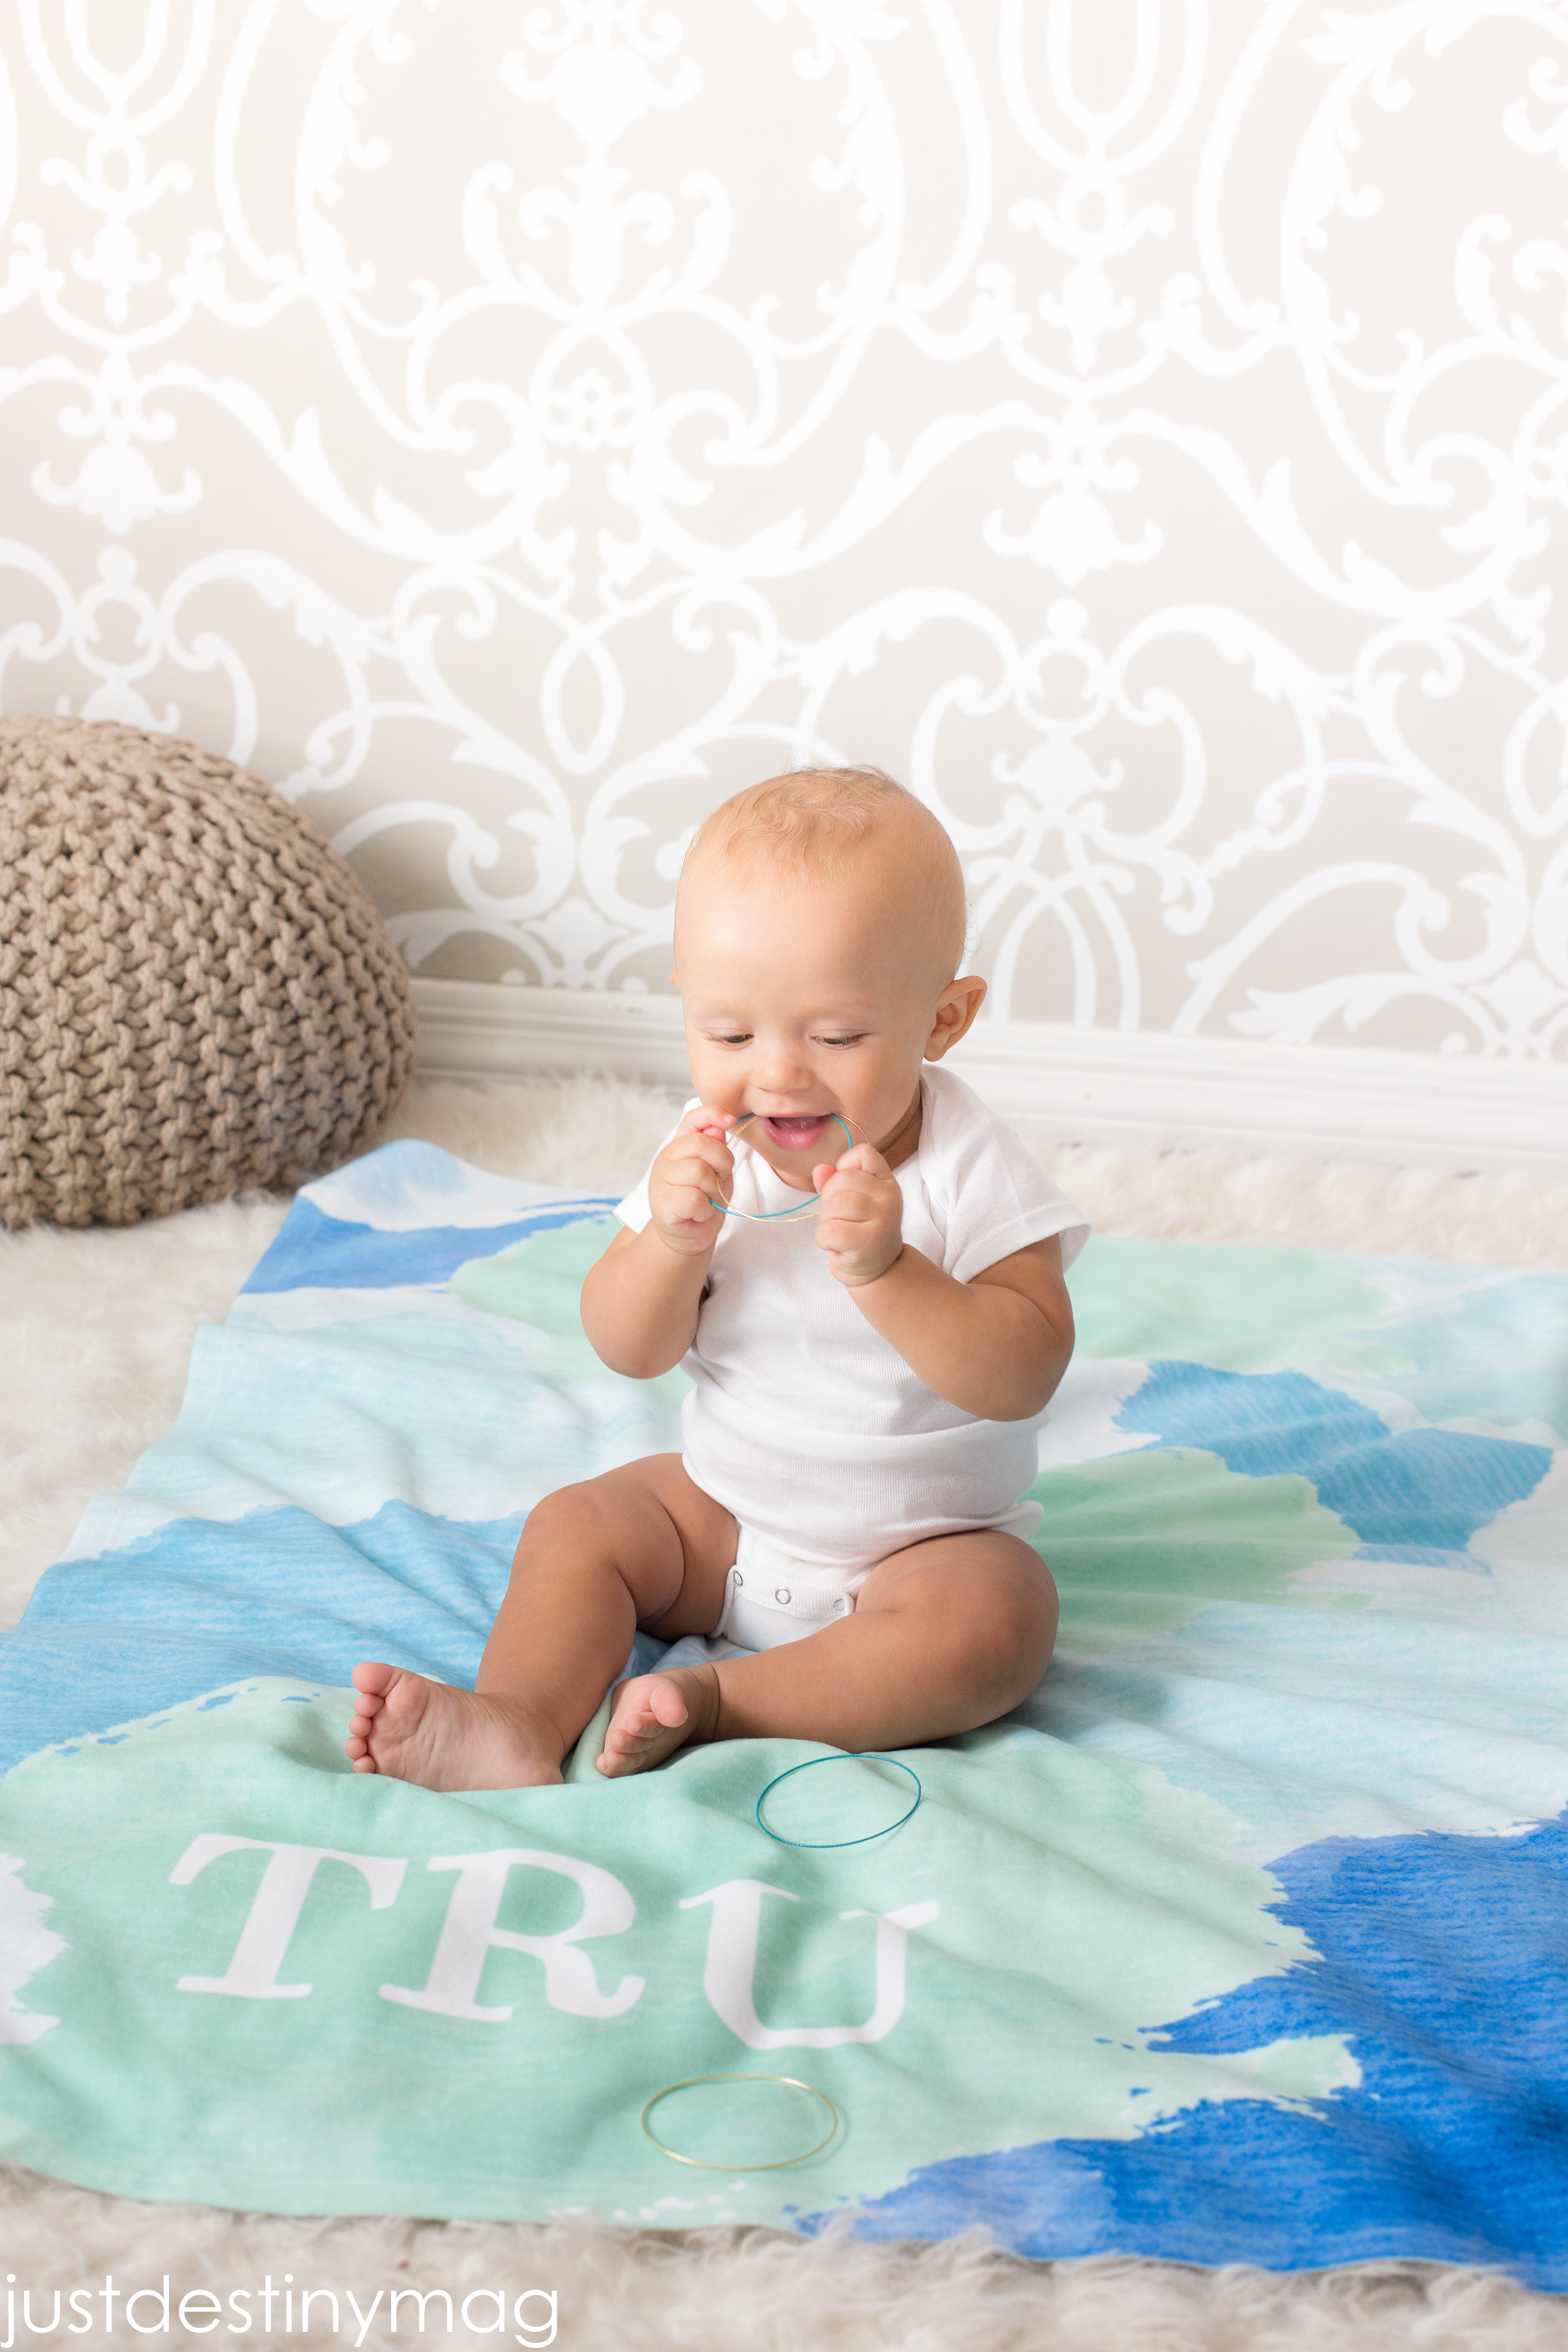 Oh BOY Shutterfly Gifts for New Moms – Shutterfly Baby Announcements